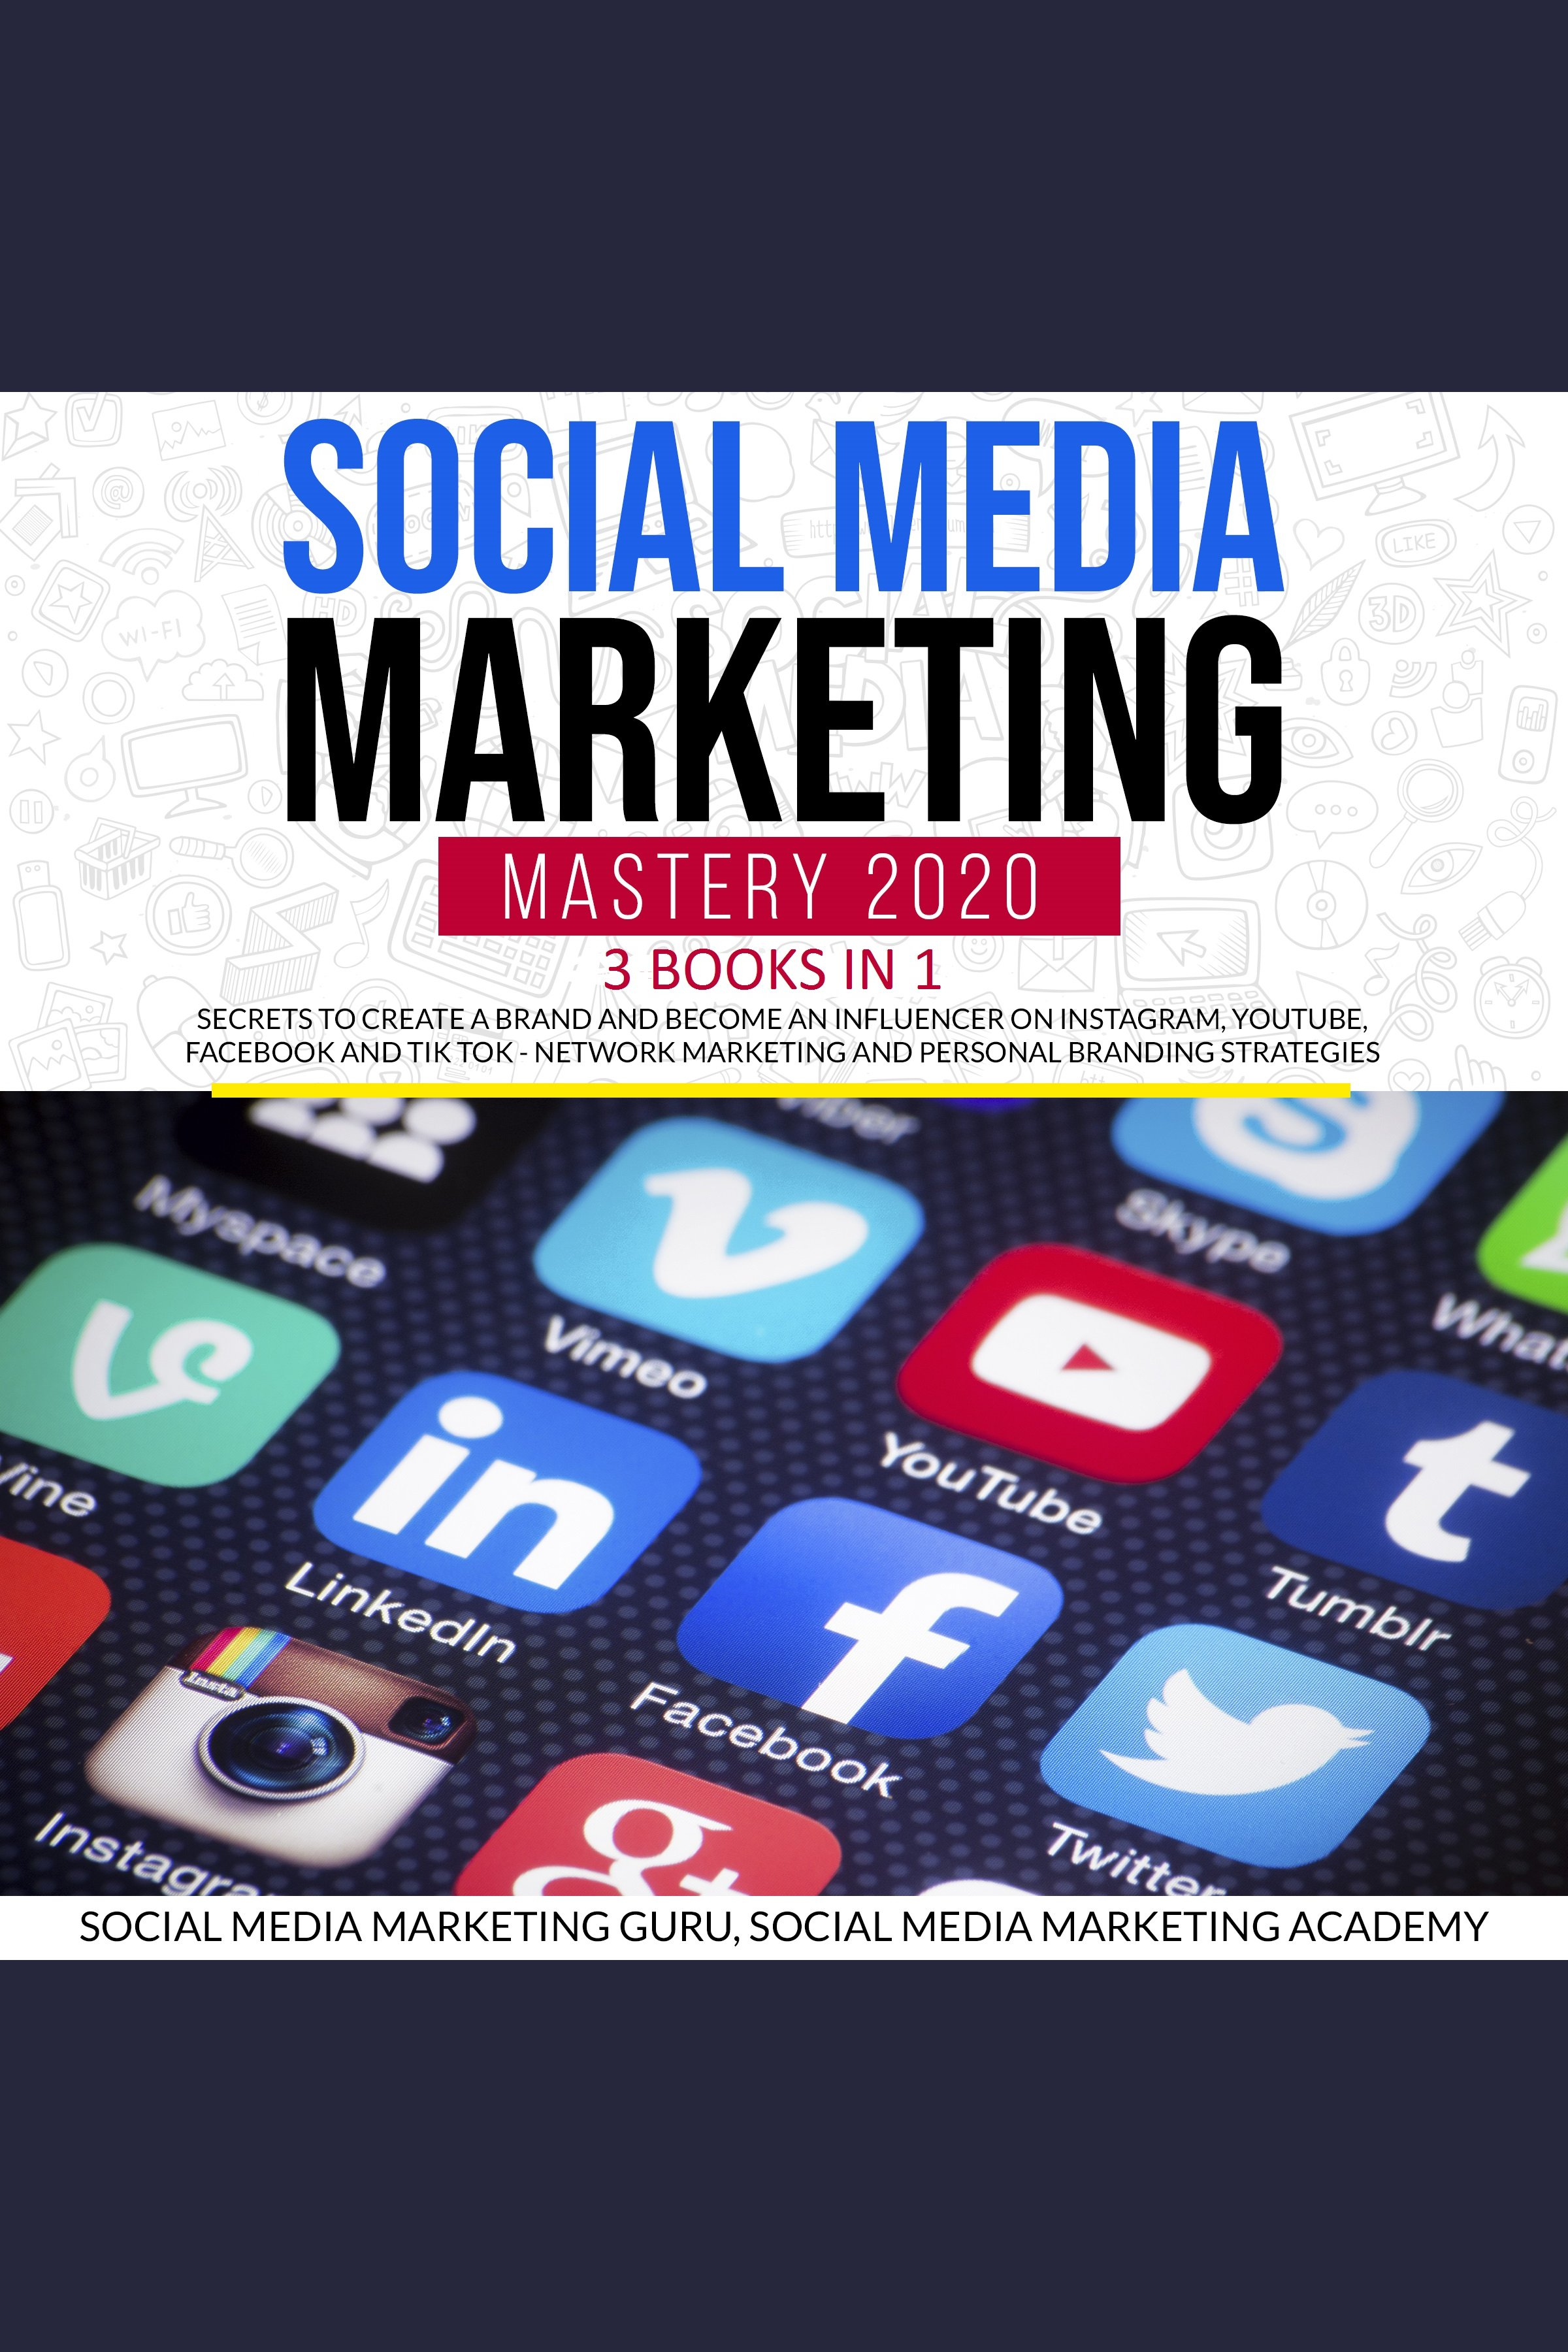 Esta es la portada del audiolibro Social Media Marketing Mastery 2020 3 Books in 1: Secrets to create a Brand and become an Influencer on Instagram, Youtube, Facebook and Tik Tok - Network Marketing and Personal Branding Strategies